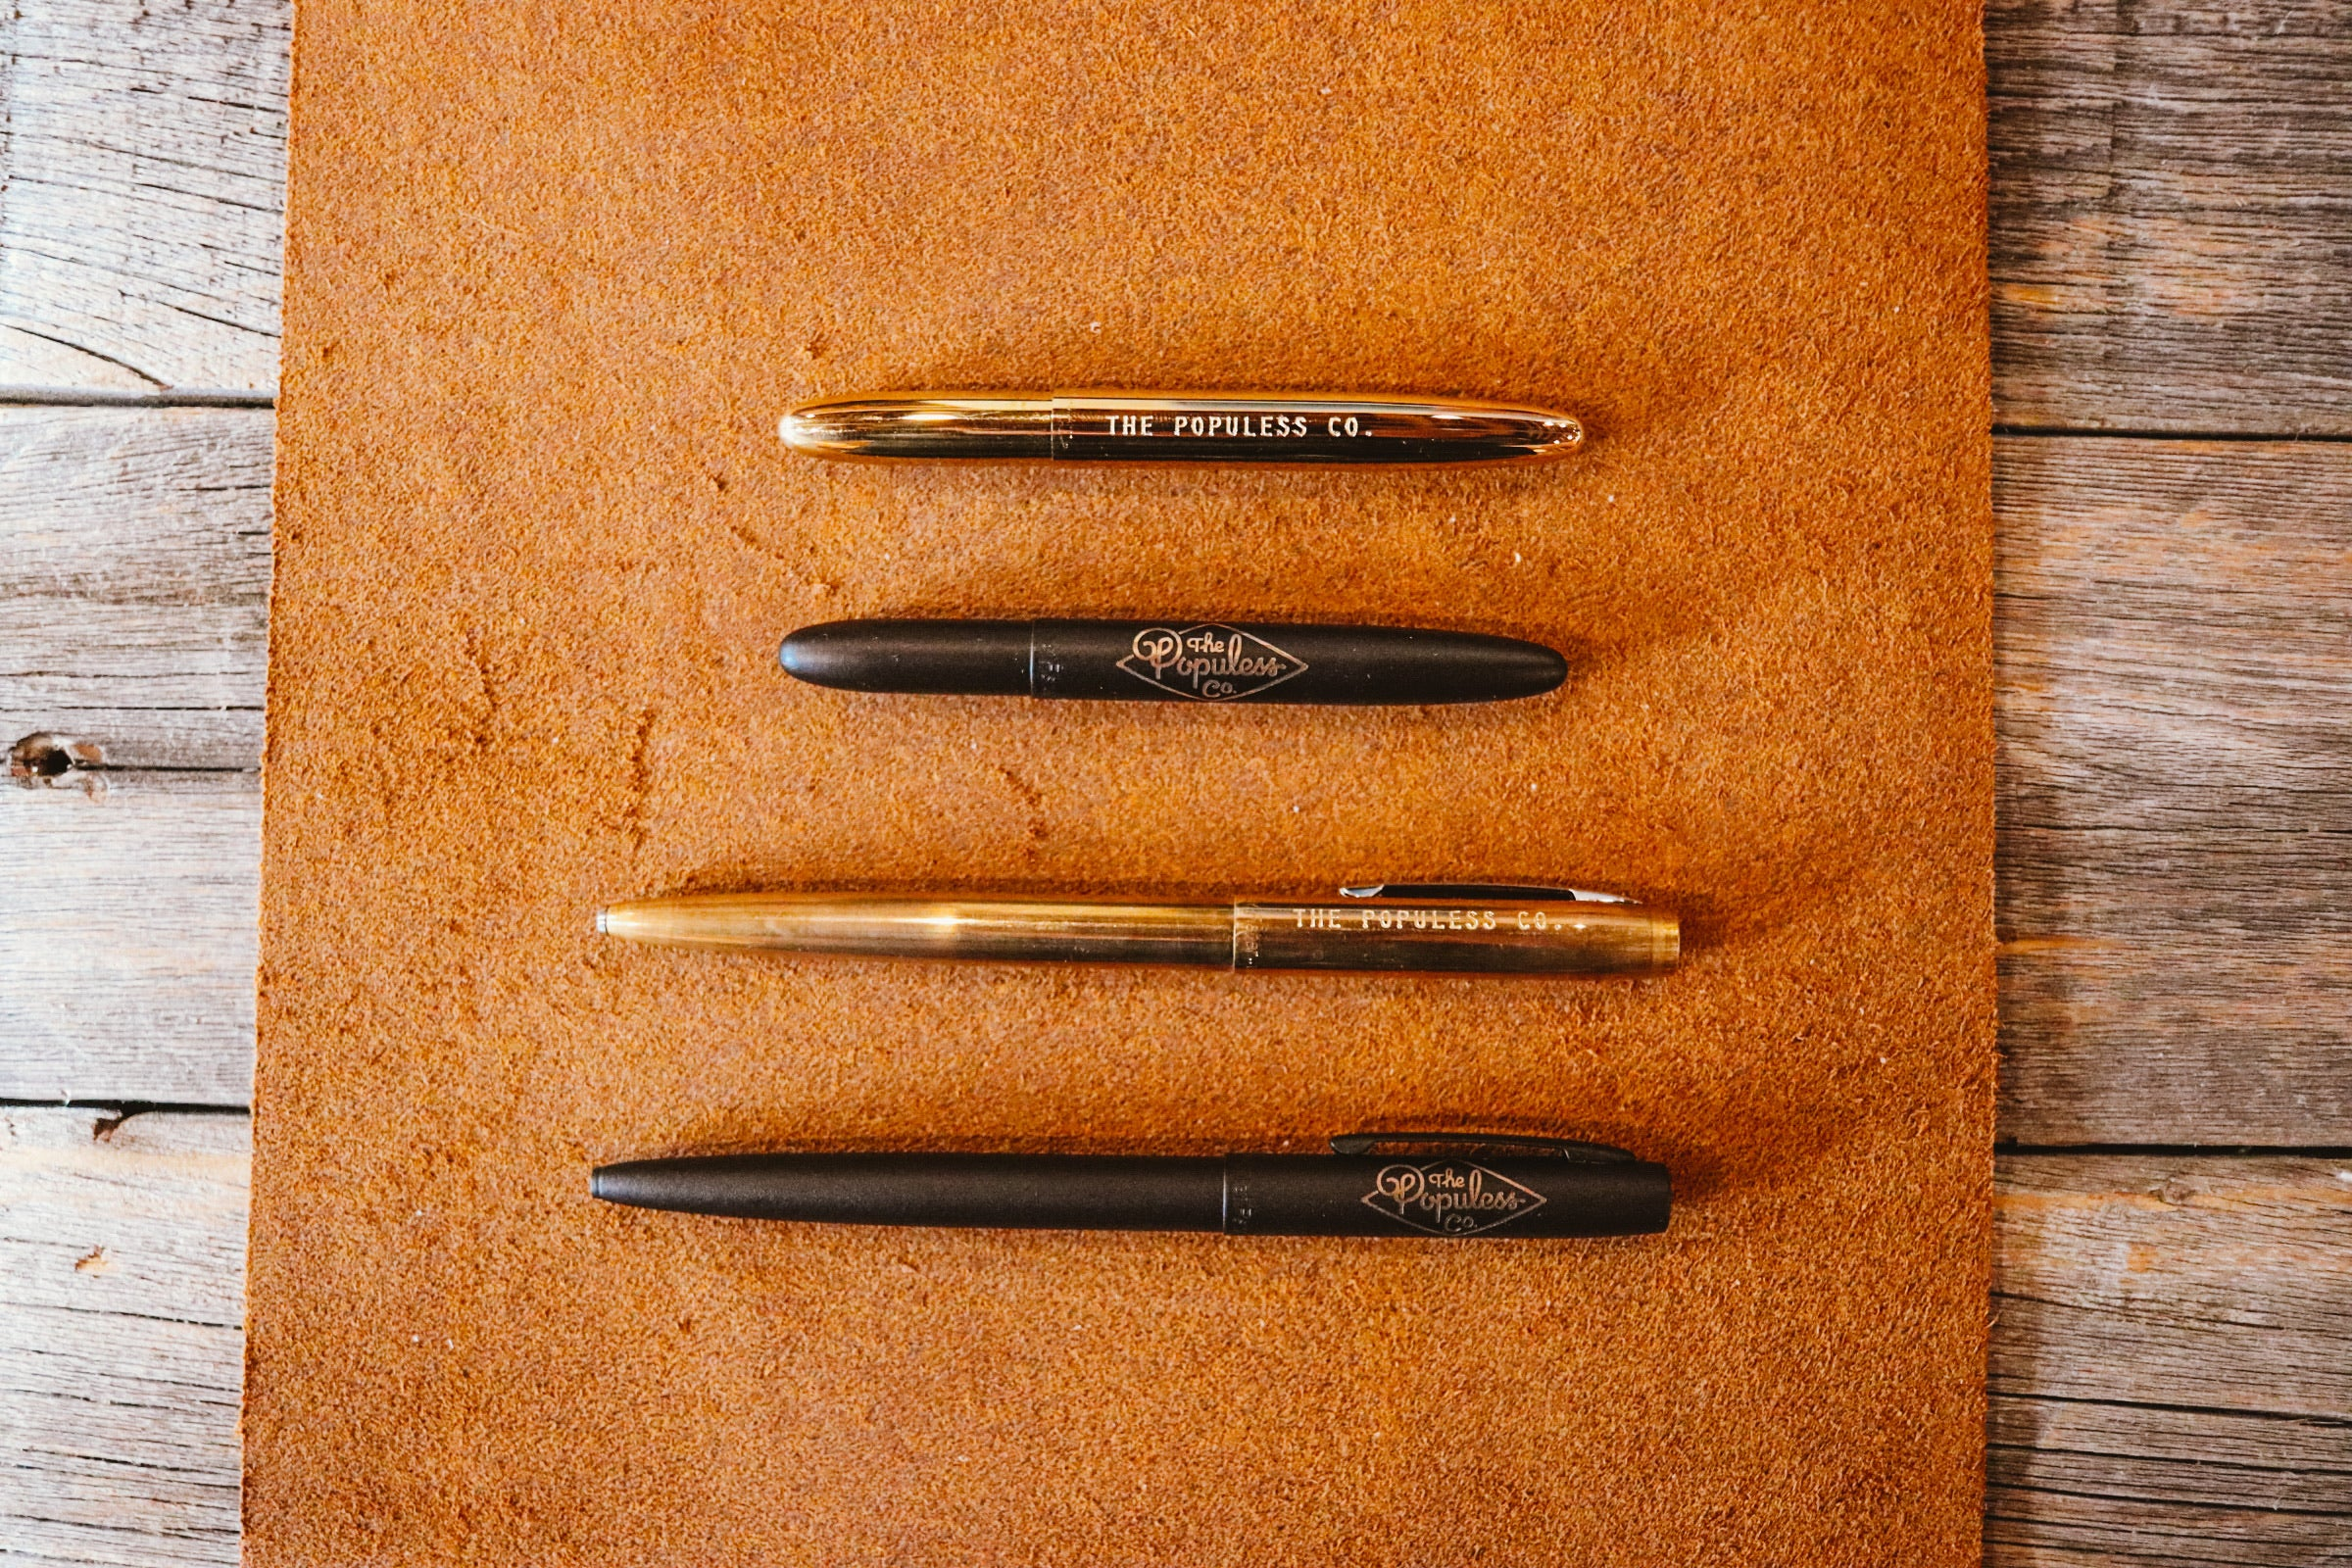 Fisher Space Pen X The Populess Company - Military Pen - Matte Black/Brass